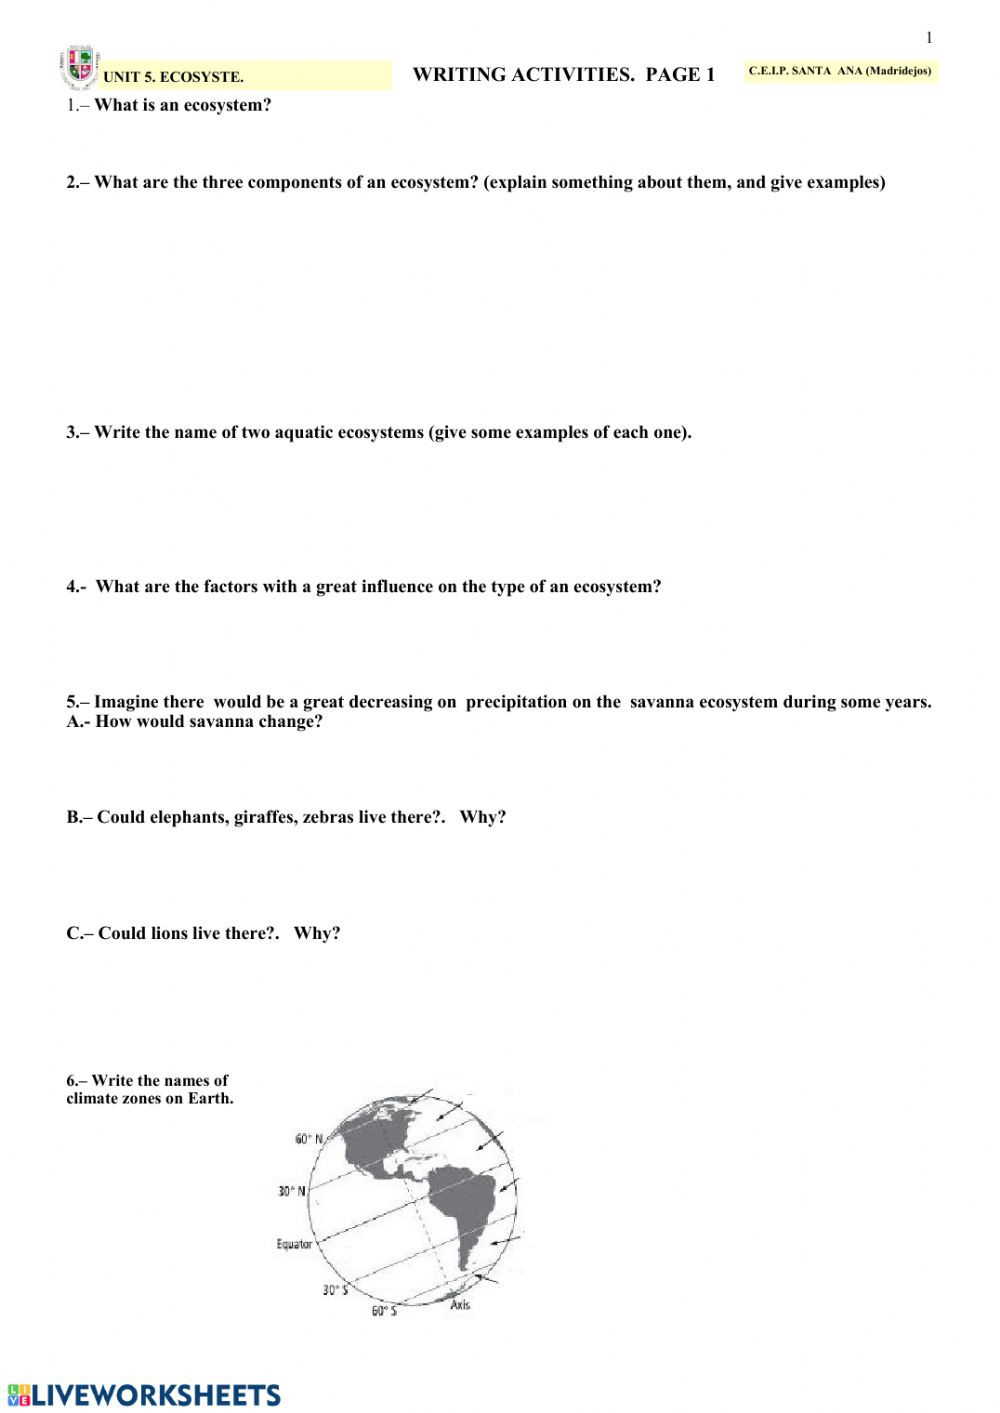 5th Grade Ecosystem Worksheets Ecosystems Sheet 1 Interactive Worksheet